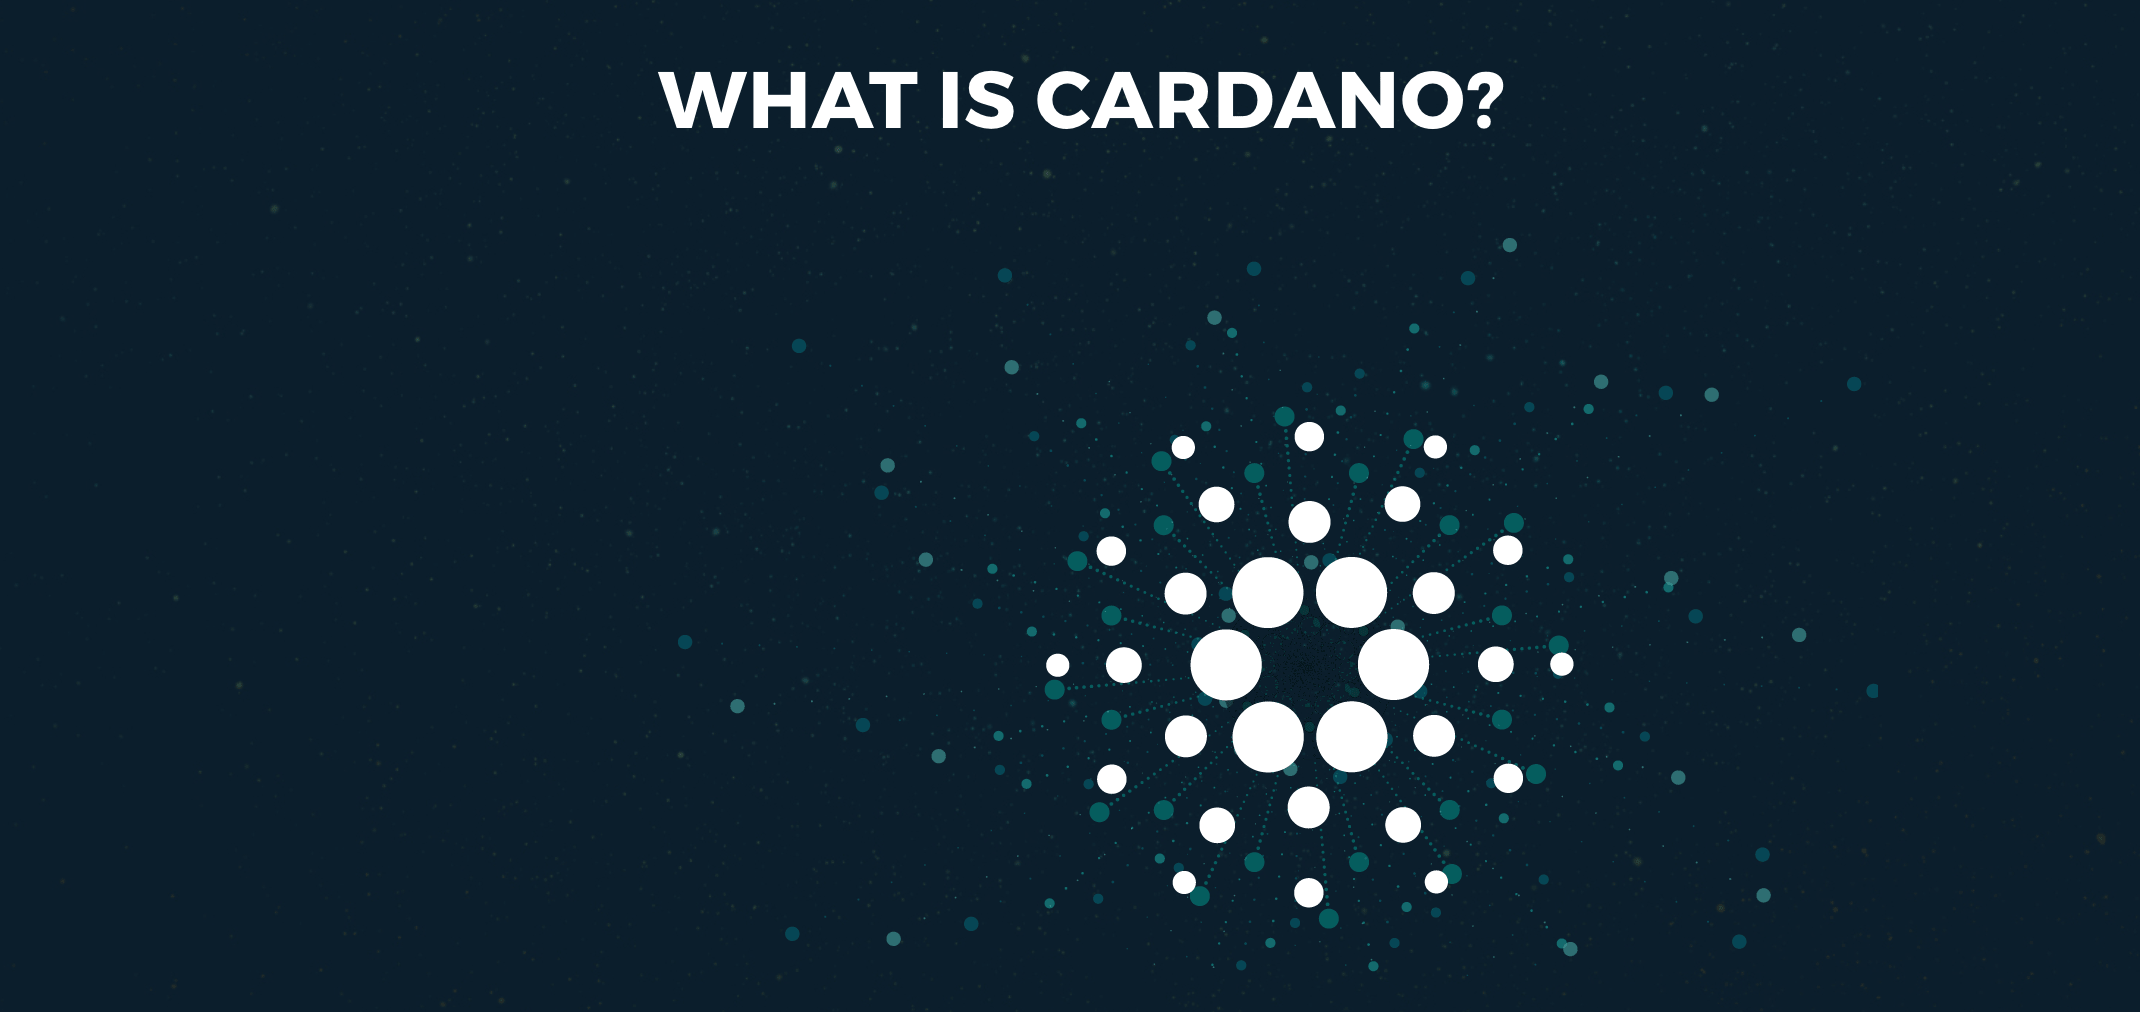 How to sell my cardano cryptocurrency